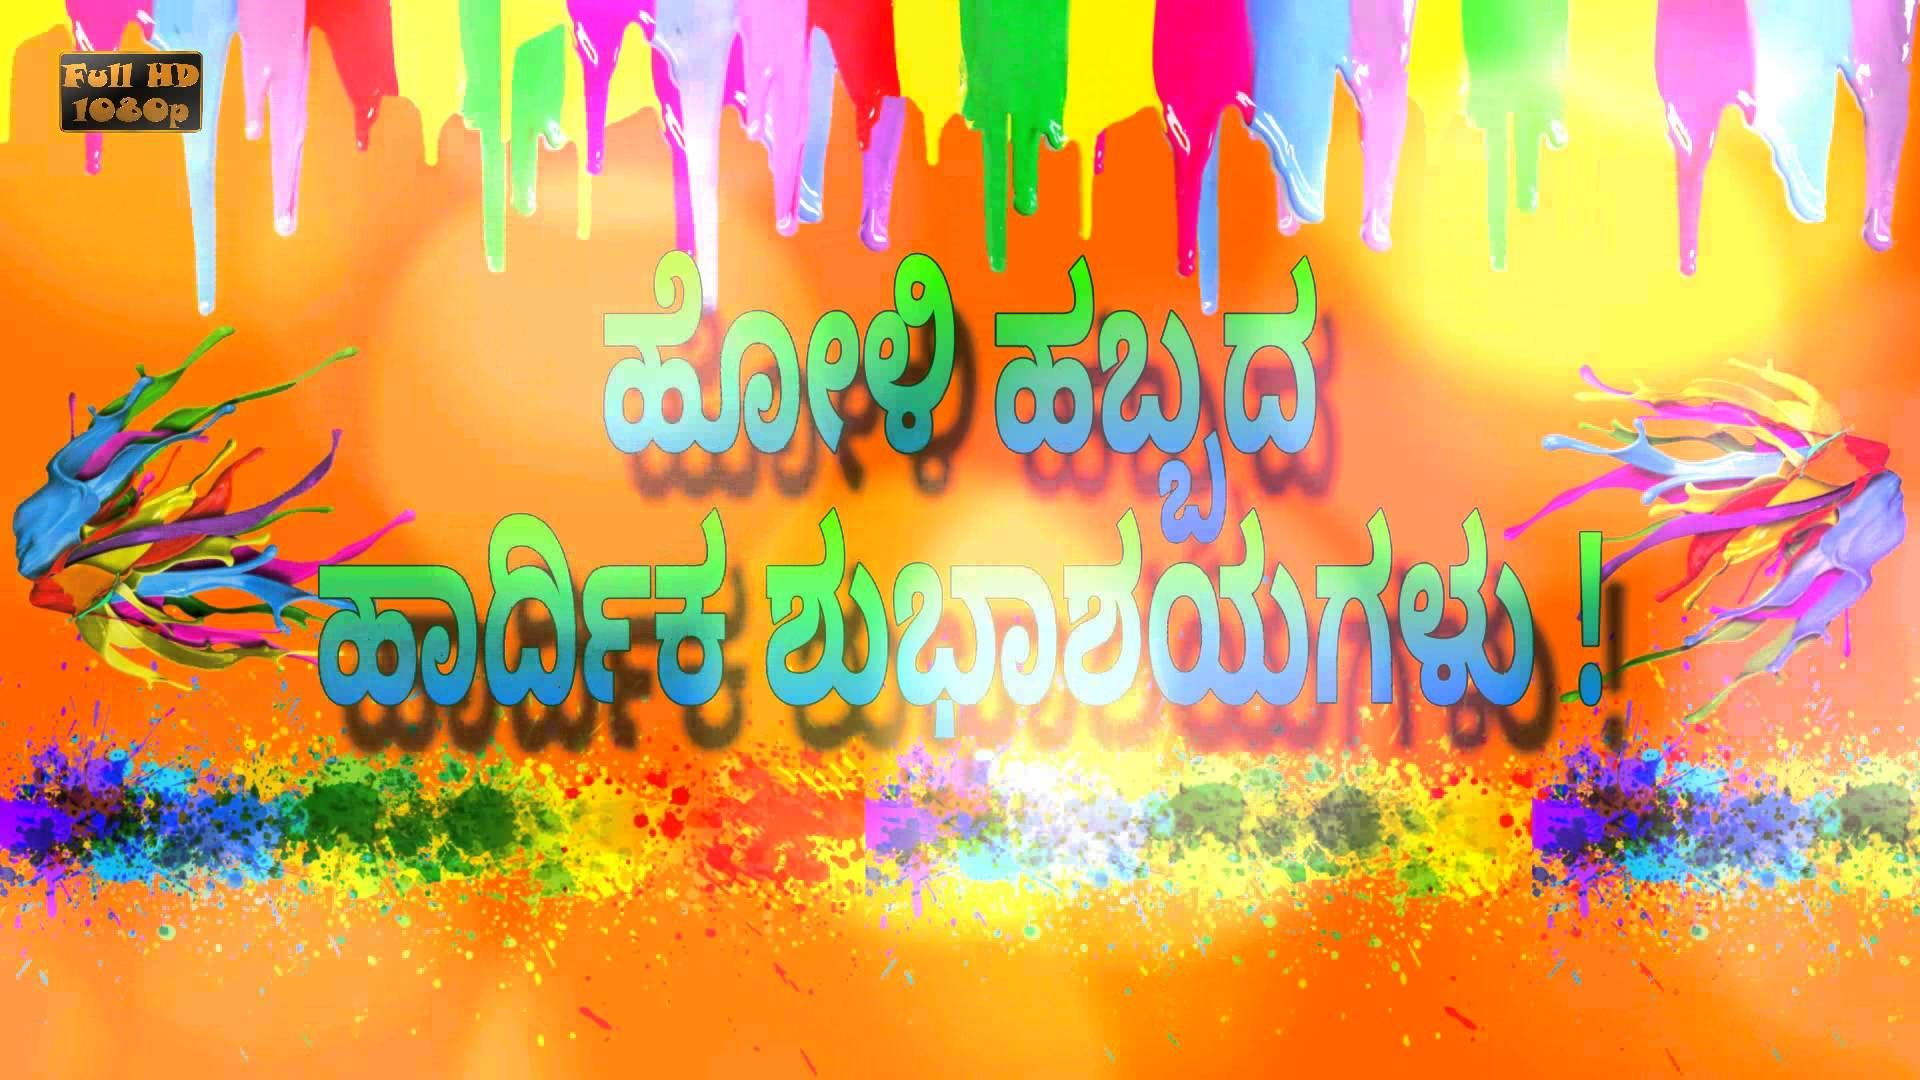 happy holi greetings in kannada holi festival wishes in kannada happy holi greetings in kannada holi festival wishes in kannada holi w